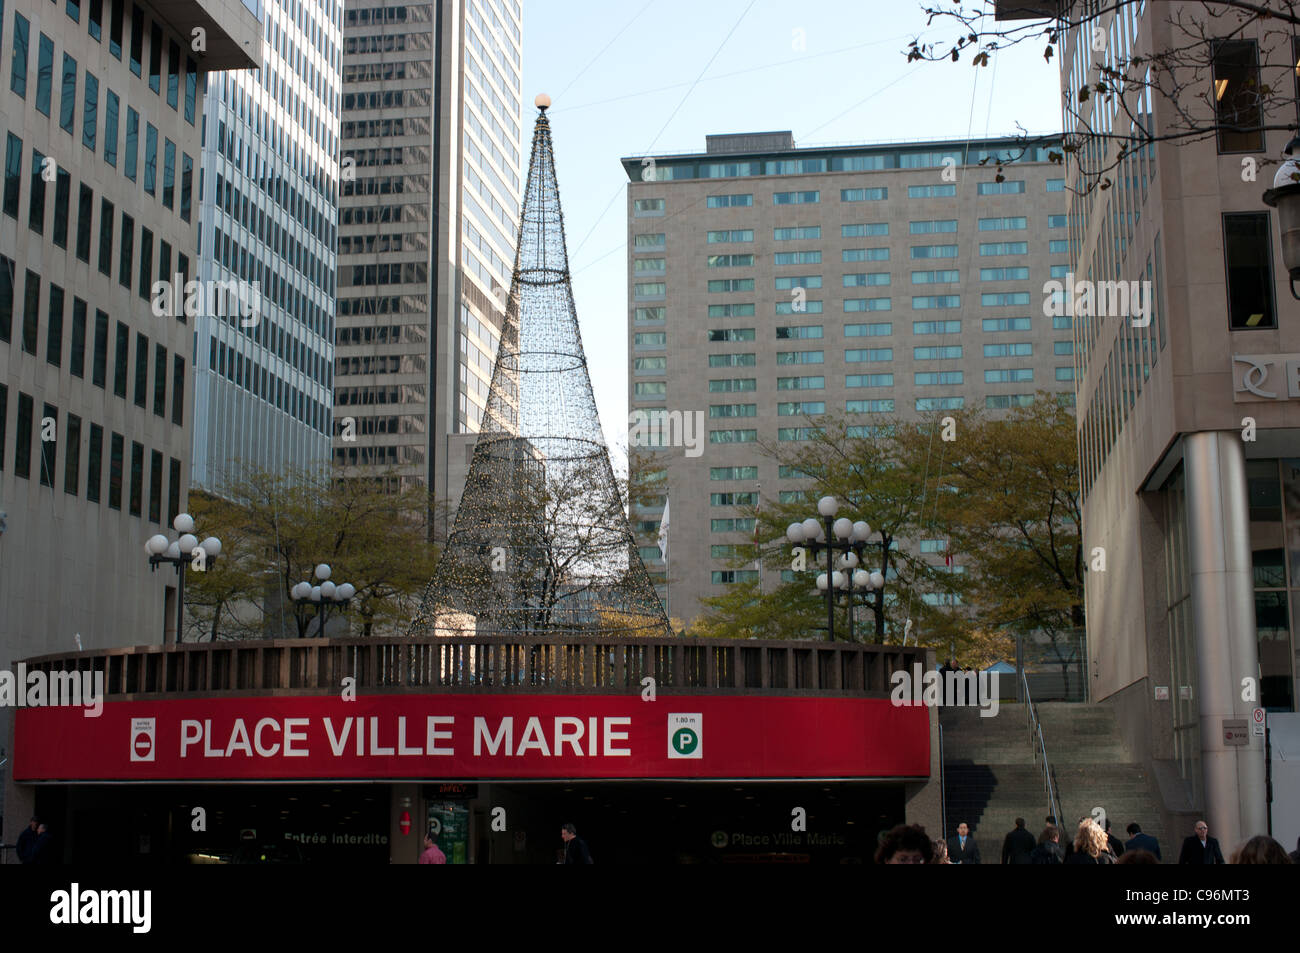 Place Ville Marie entrance to indoor parking, Downtown, Montreal, Quebec, Canada Stock Photo